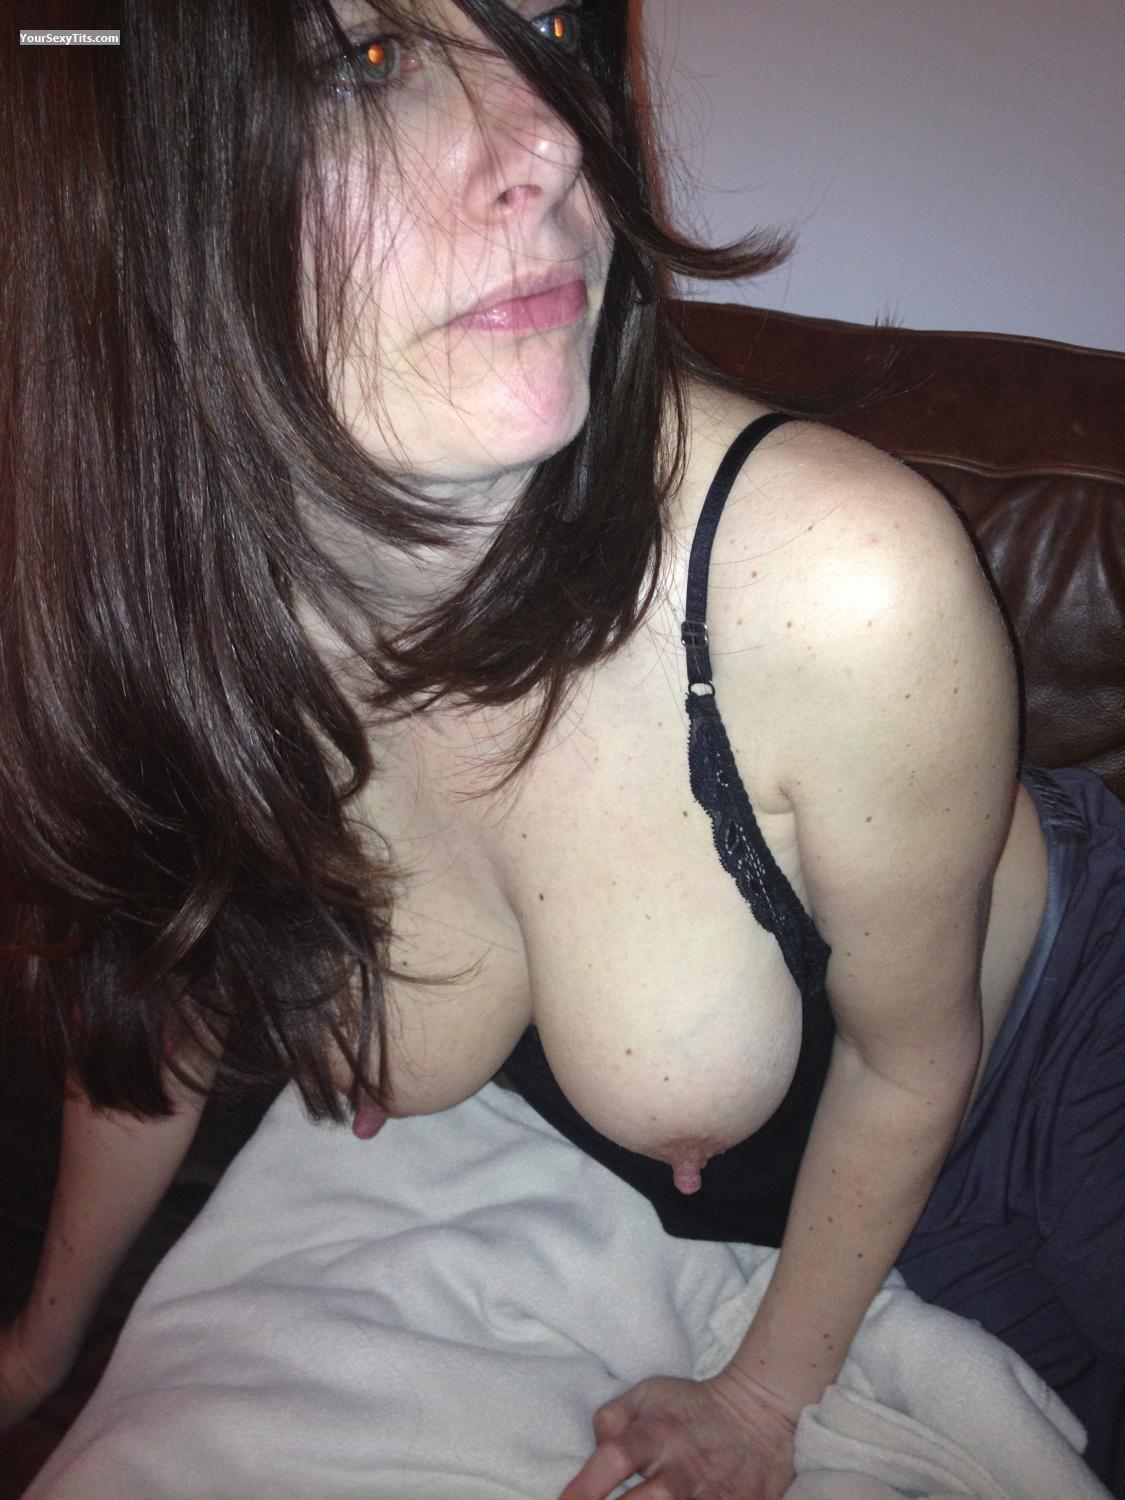 Very big Tits Topless Nearly 40